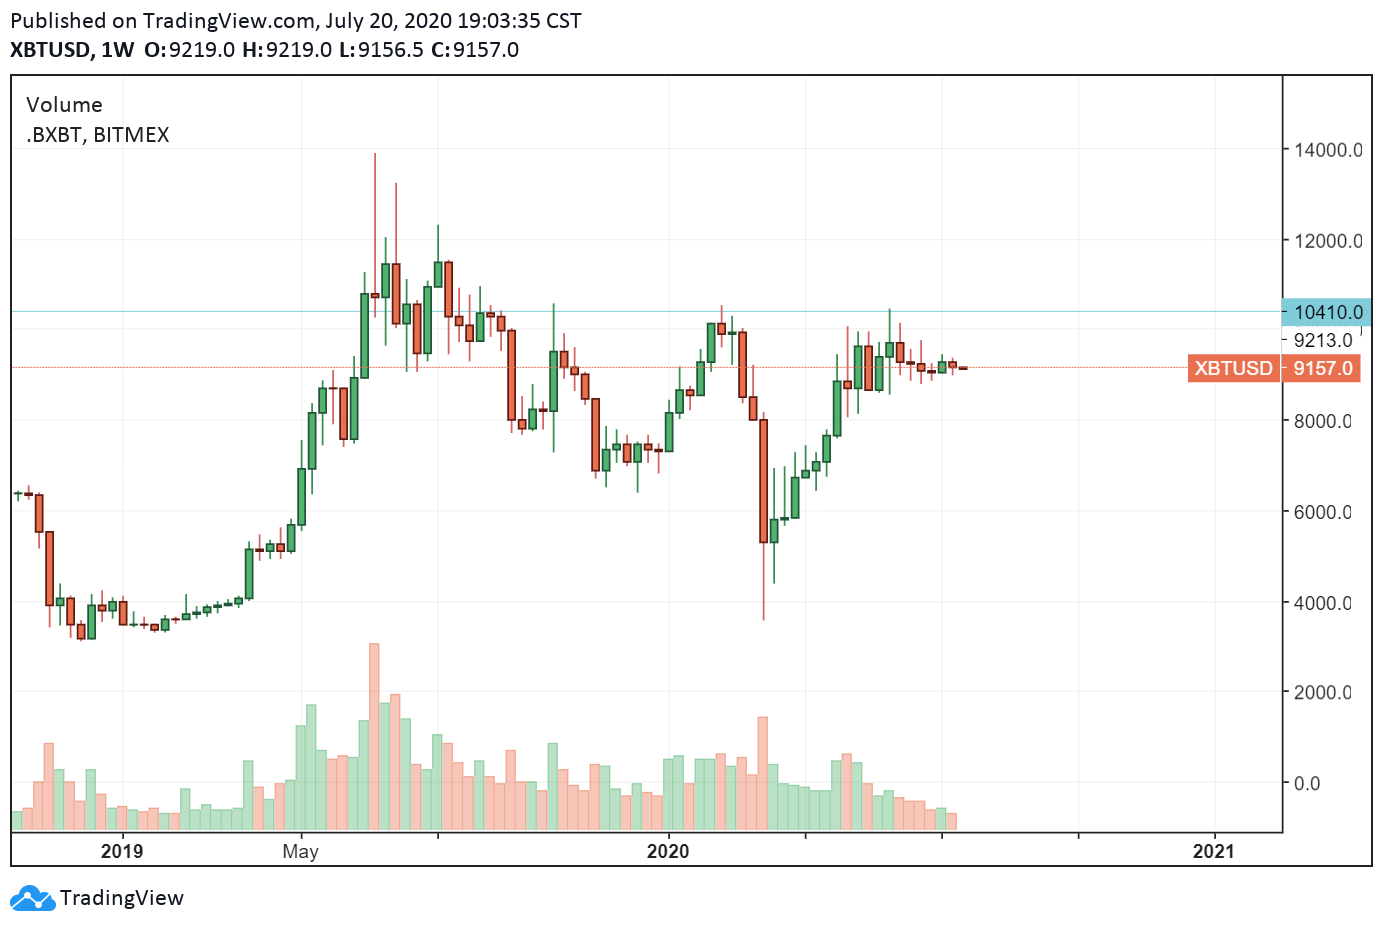 The price of Bitcoin dropped to sub-$3,600 in March